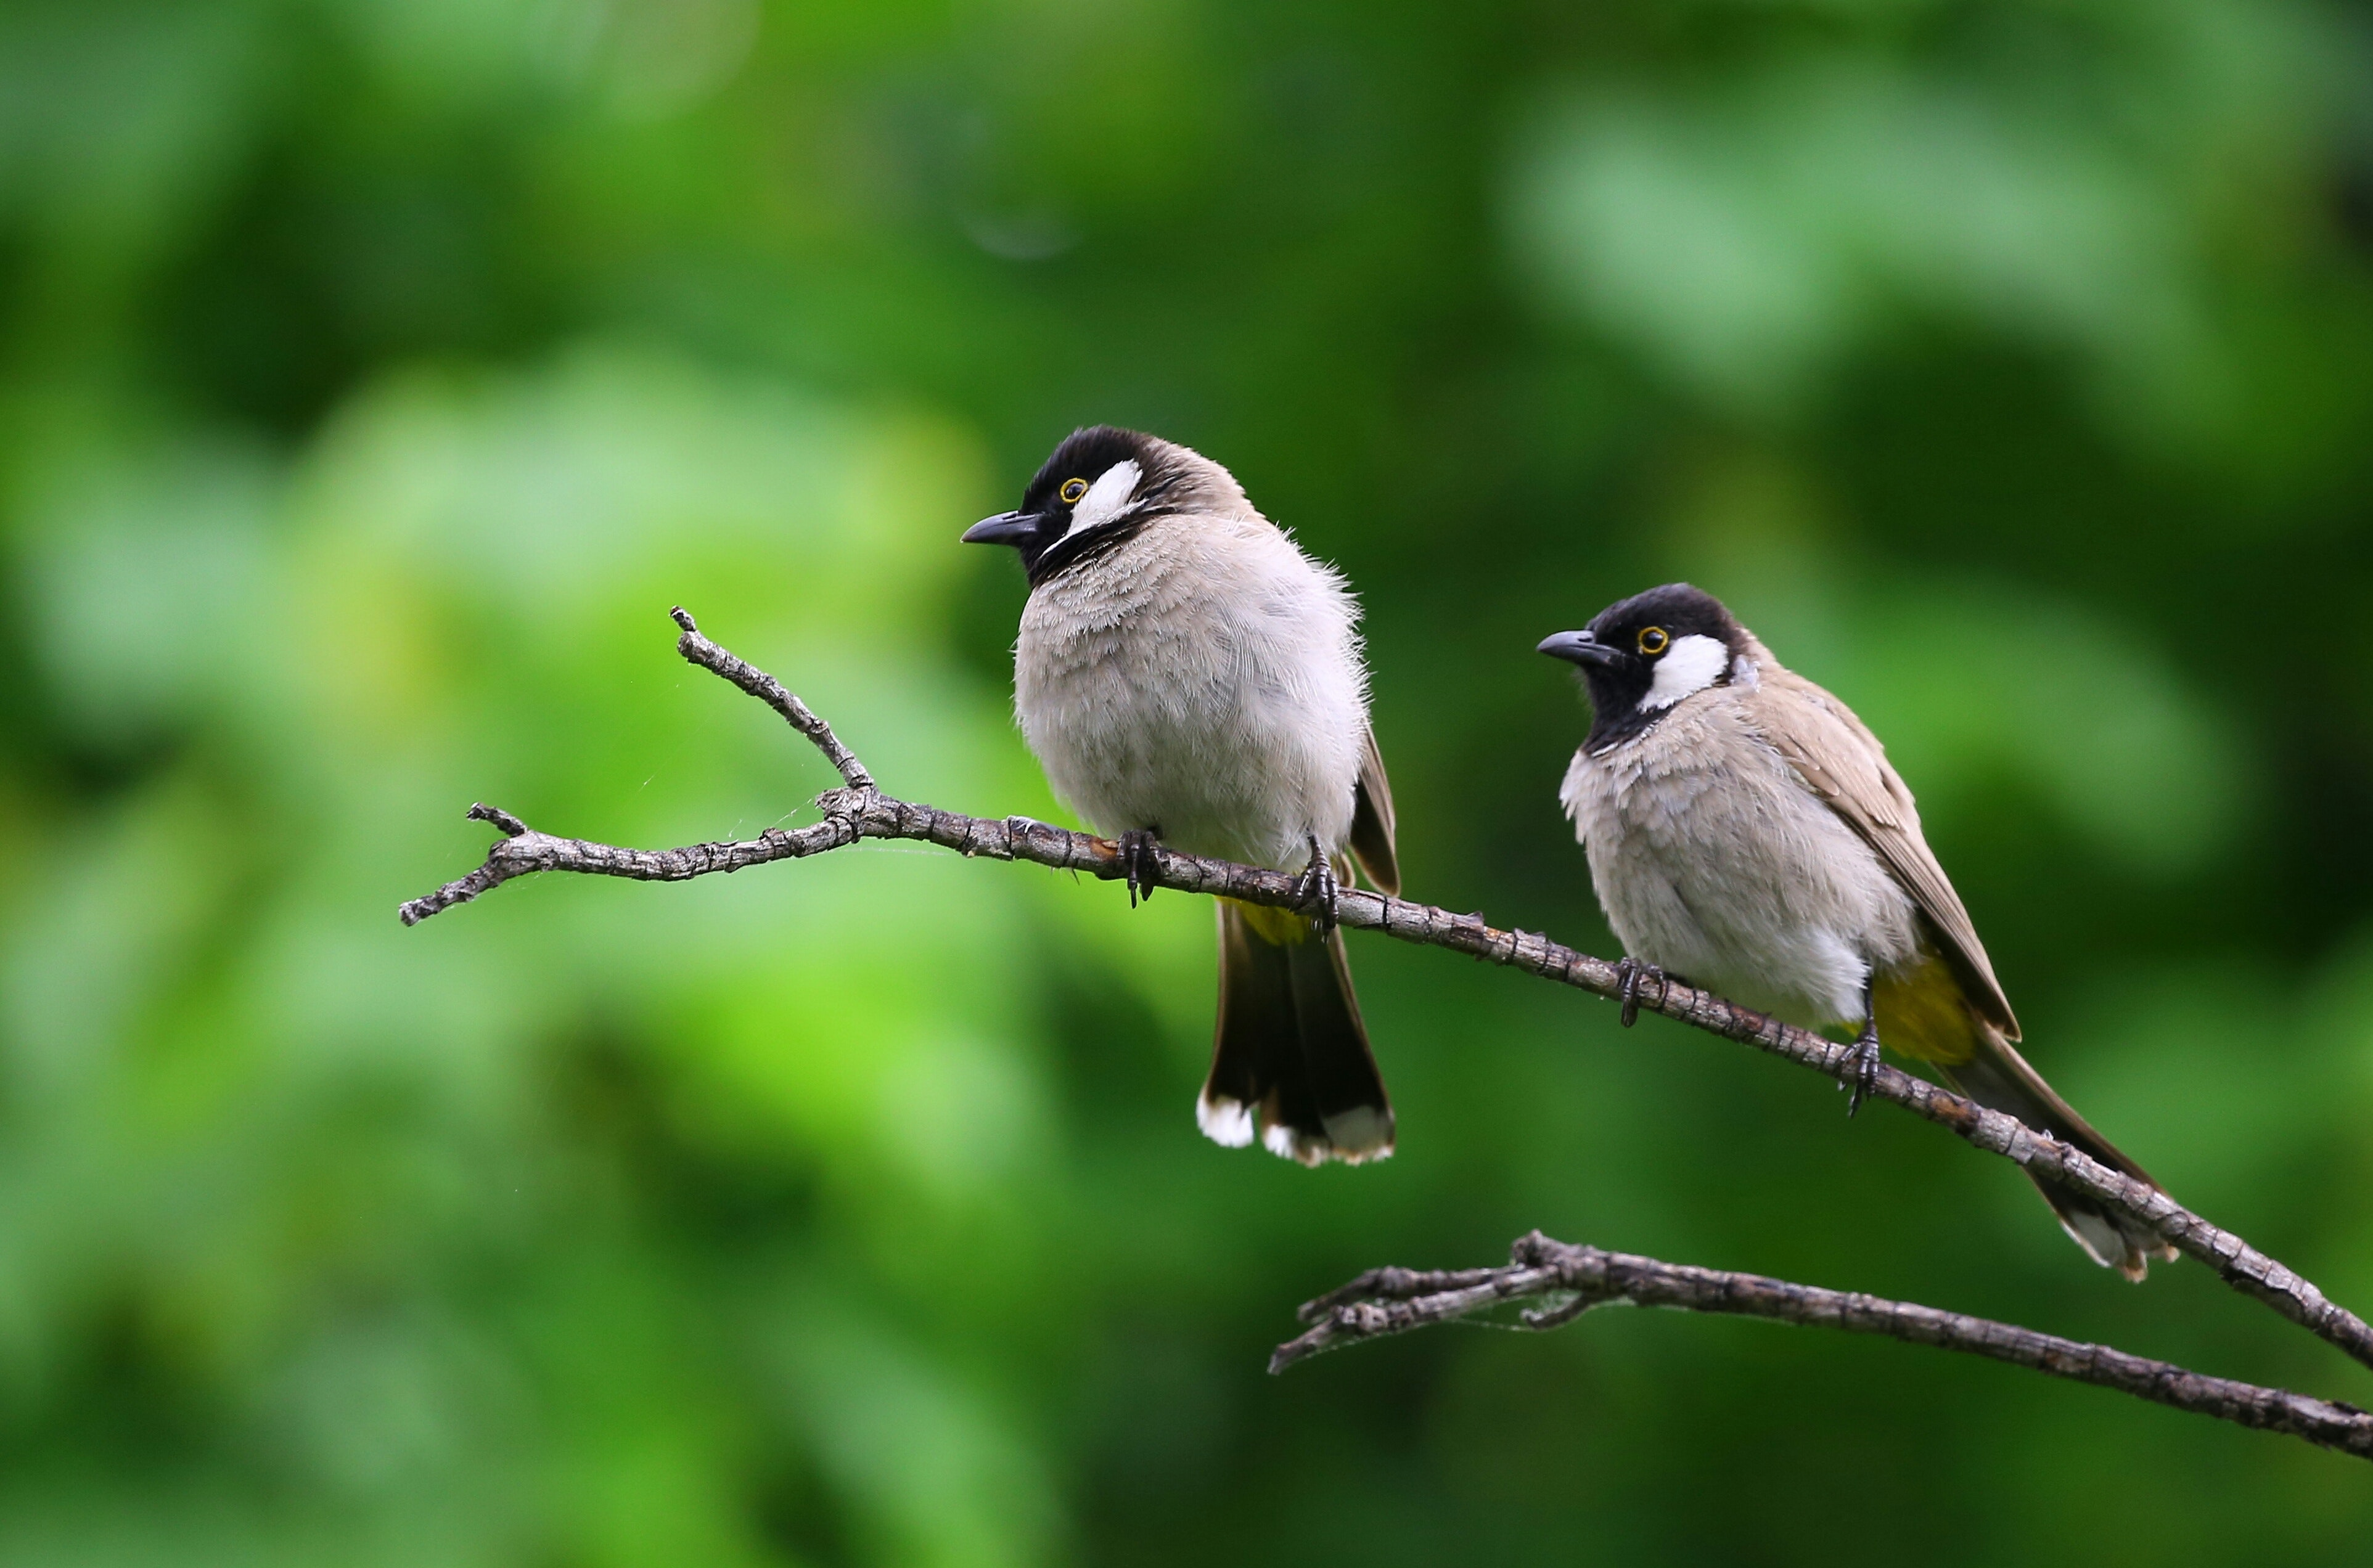 White And Black Birds Piercing On Tree Branch Free Stock